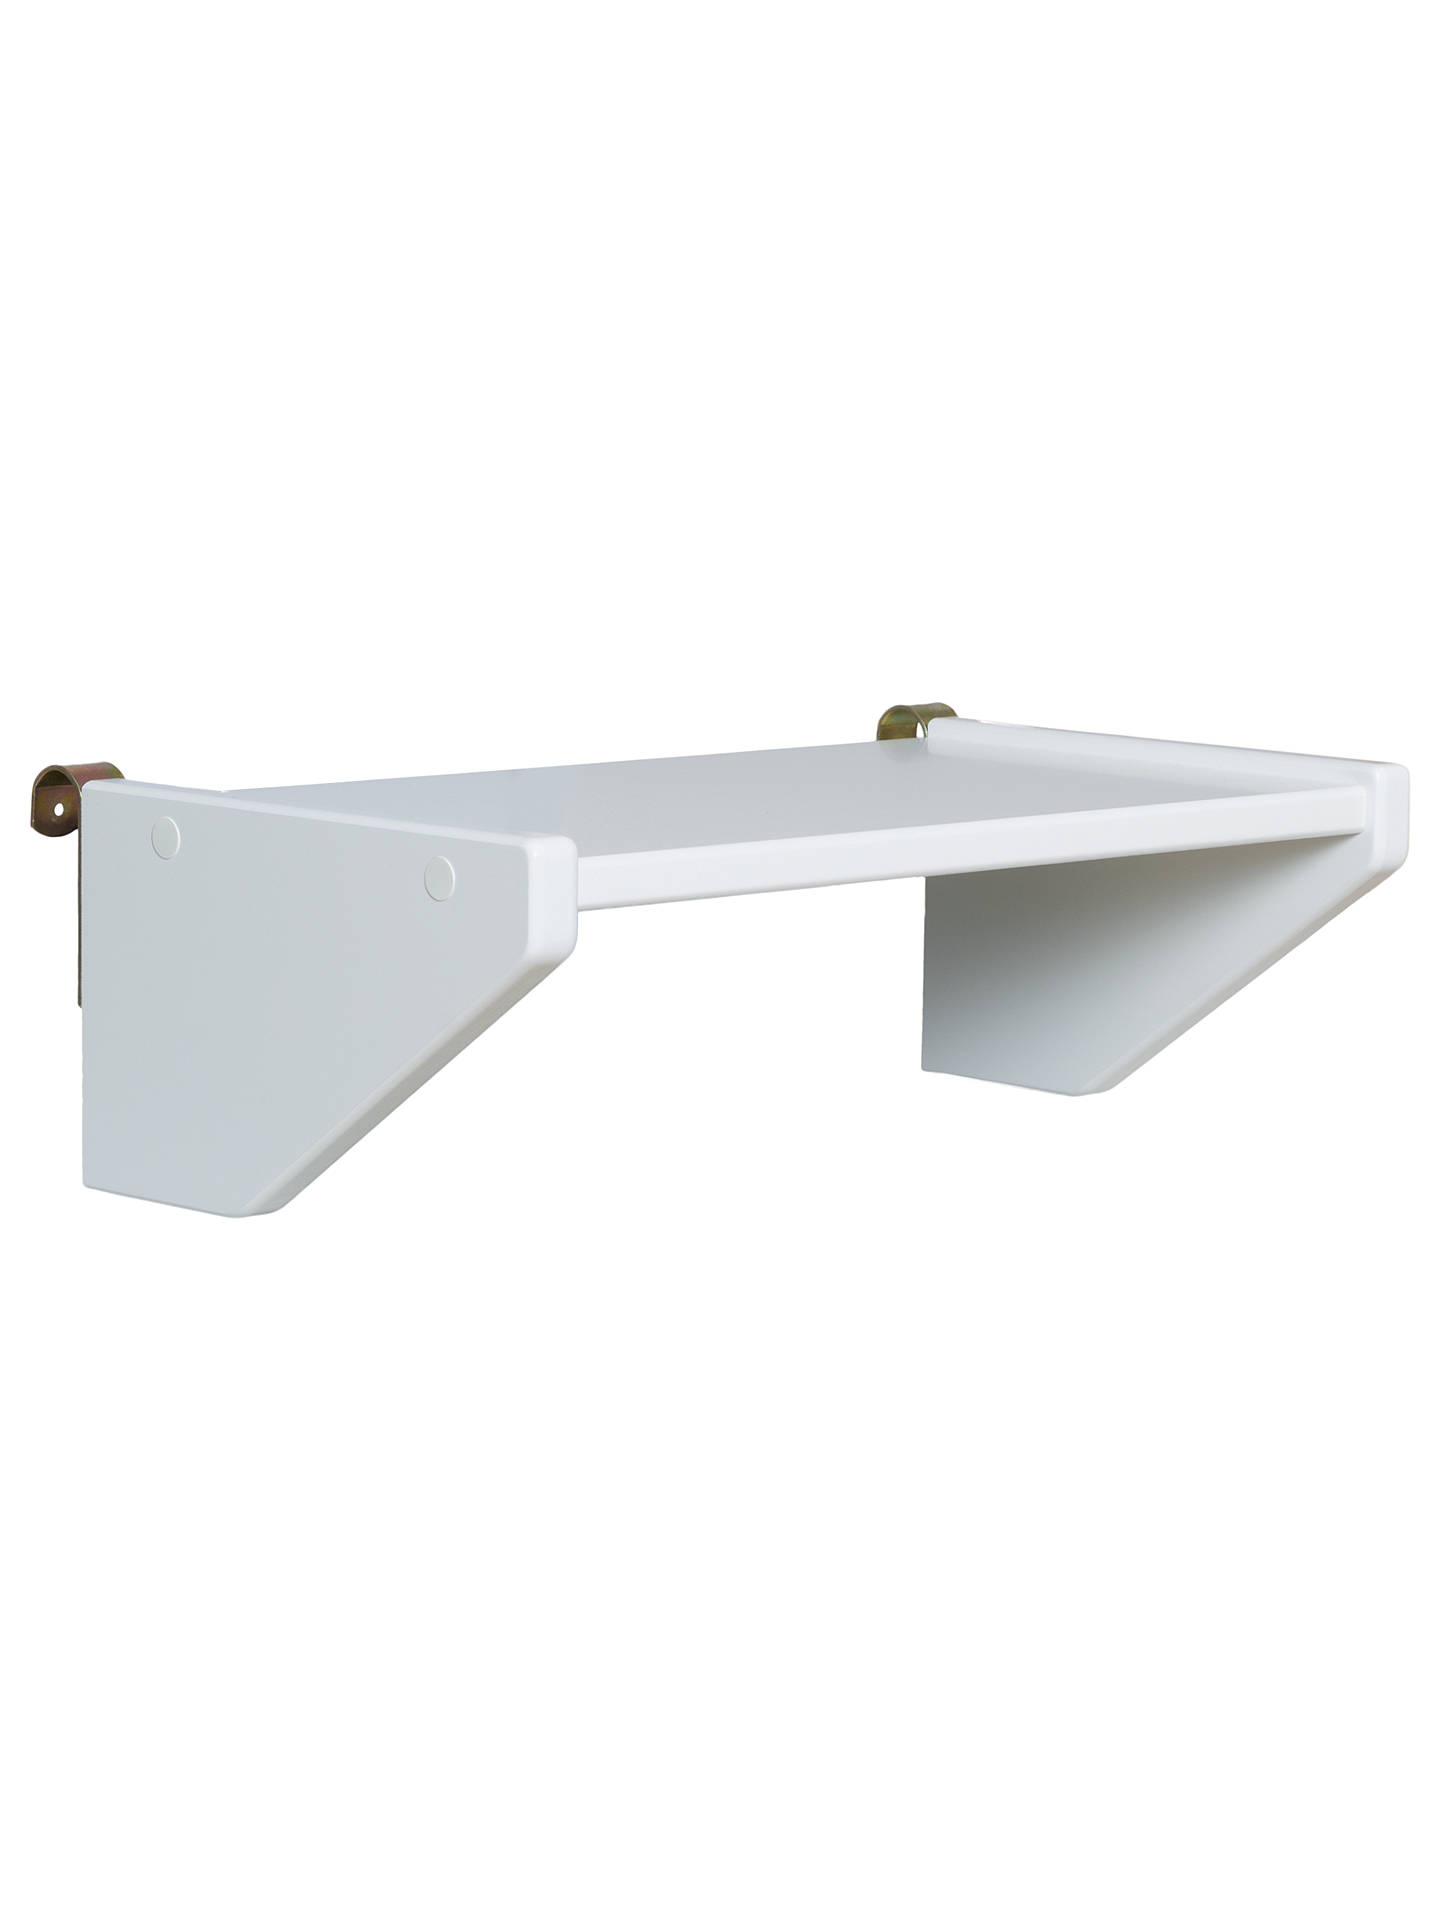 Buy Stompa Uno S Plus Small Clip-On Shelf, White Online at johnlewis.com